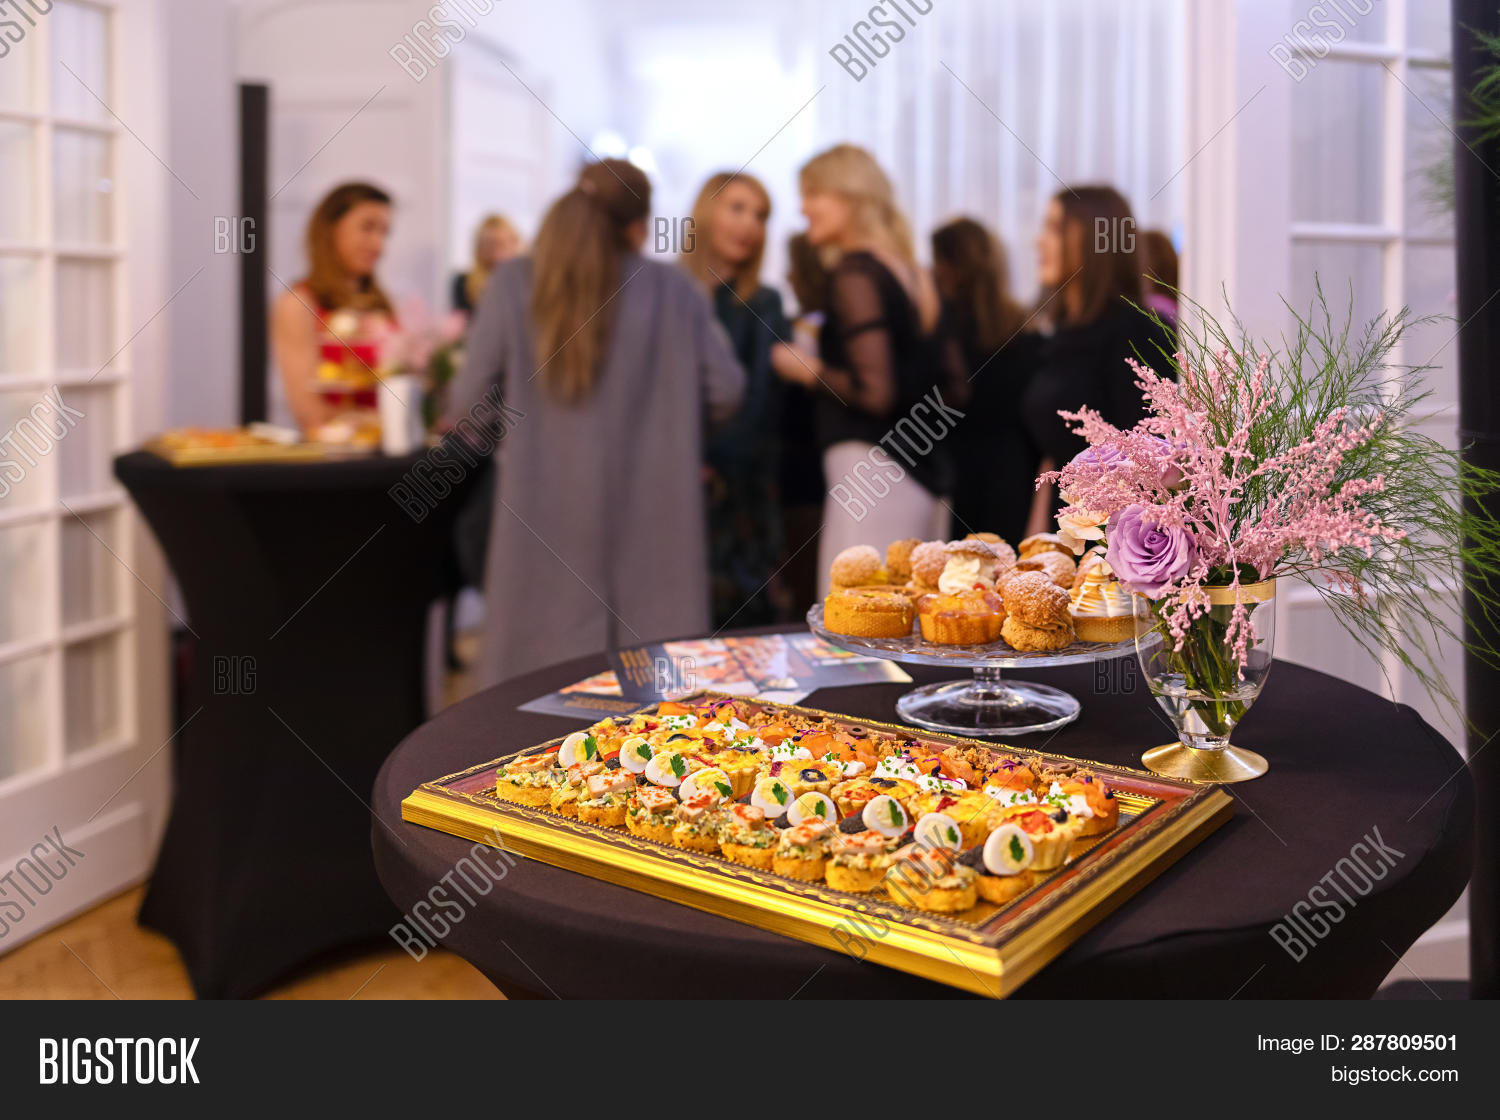 background,banquet,blur,brunch,buffet,business,catering,celebration,corporate,decoration,delicious,dining,dinner,eat,enjoyment,events,festive,food,group,happy,hospitality,indoor,lunch,luxury,meal,party,people,plate,reception,restaurant,serve,service,snacks,table,wedding,white